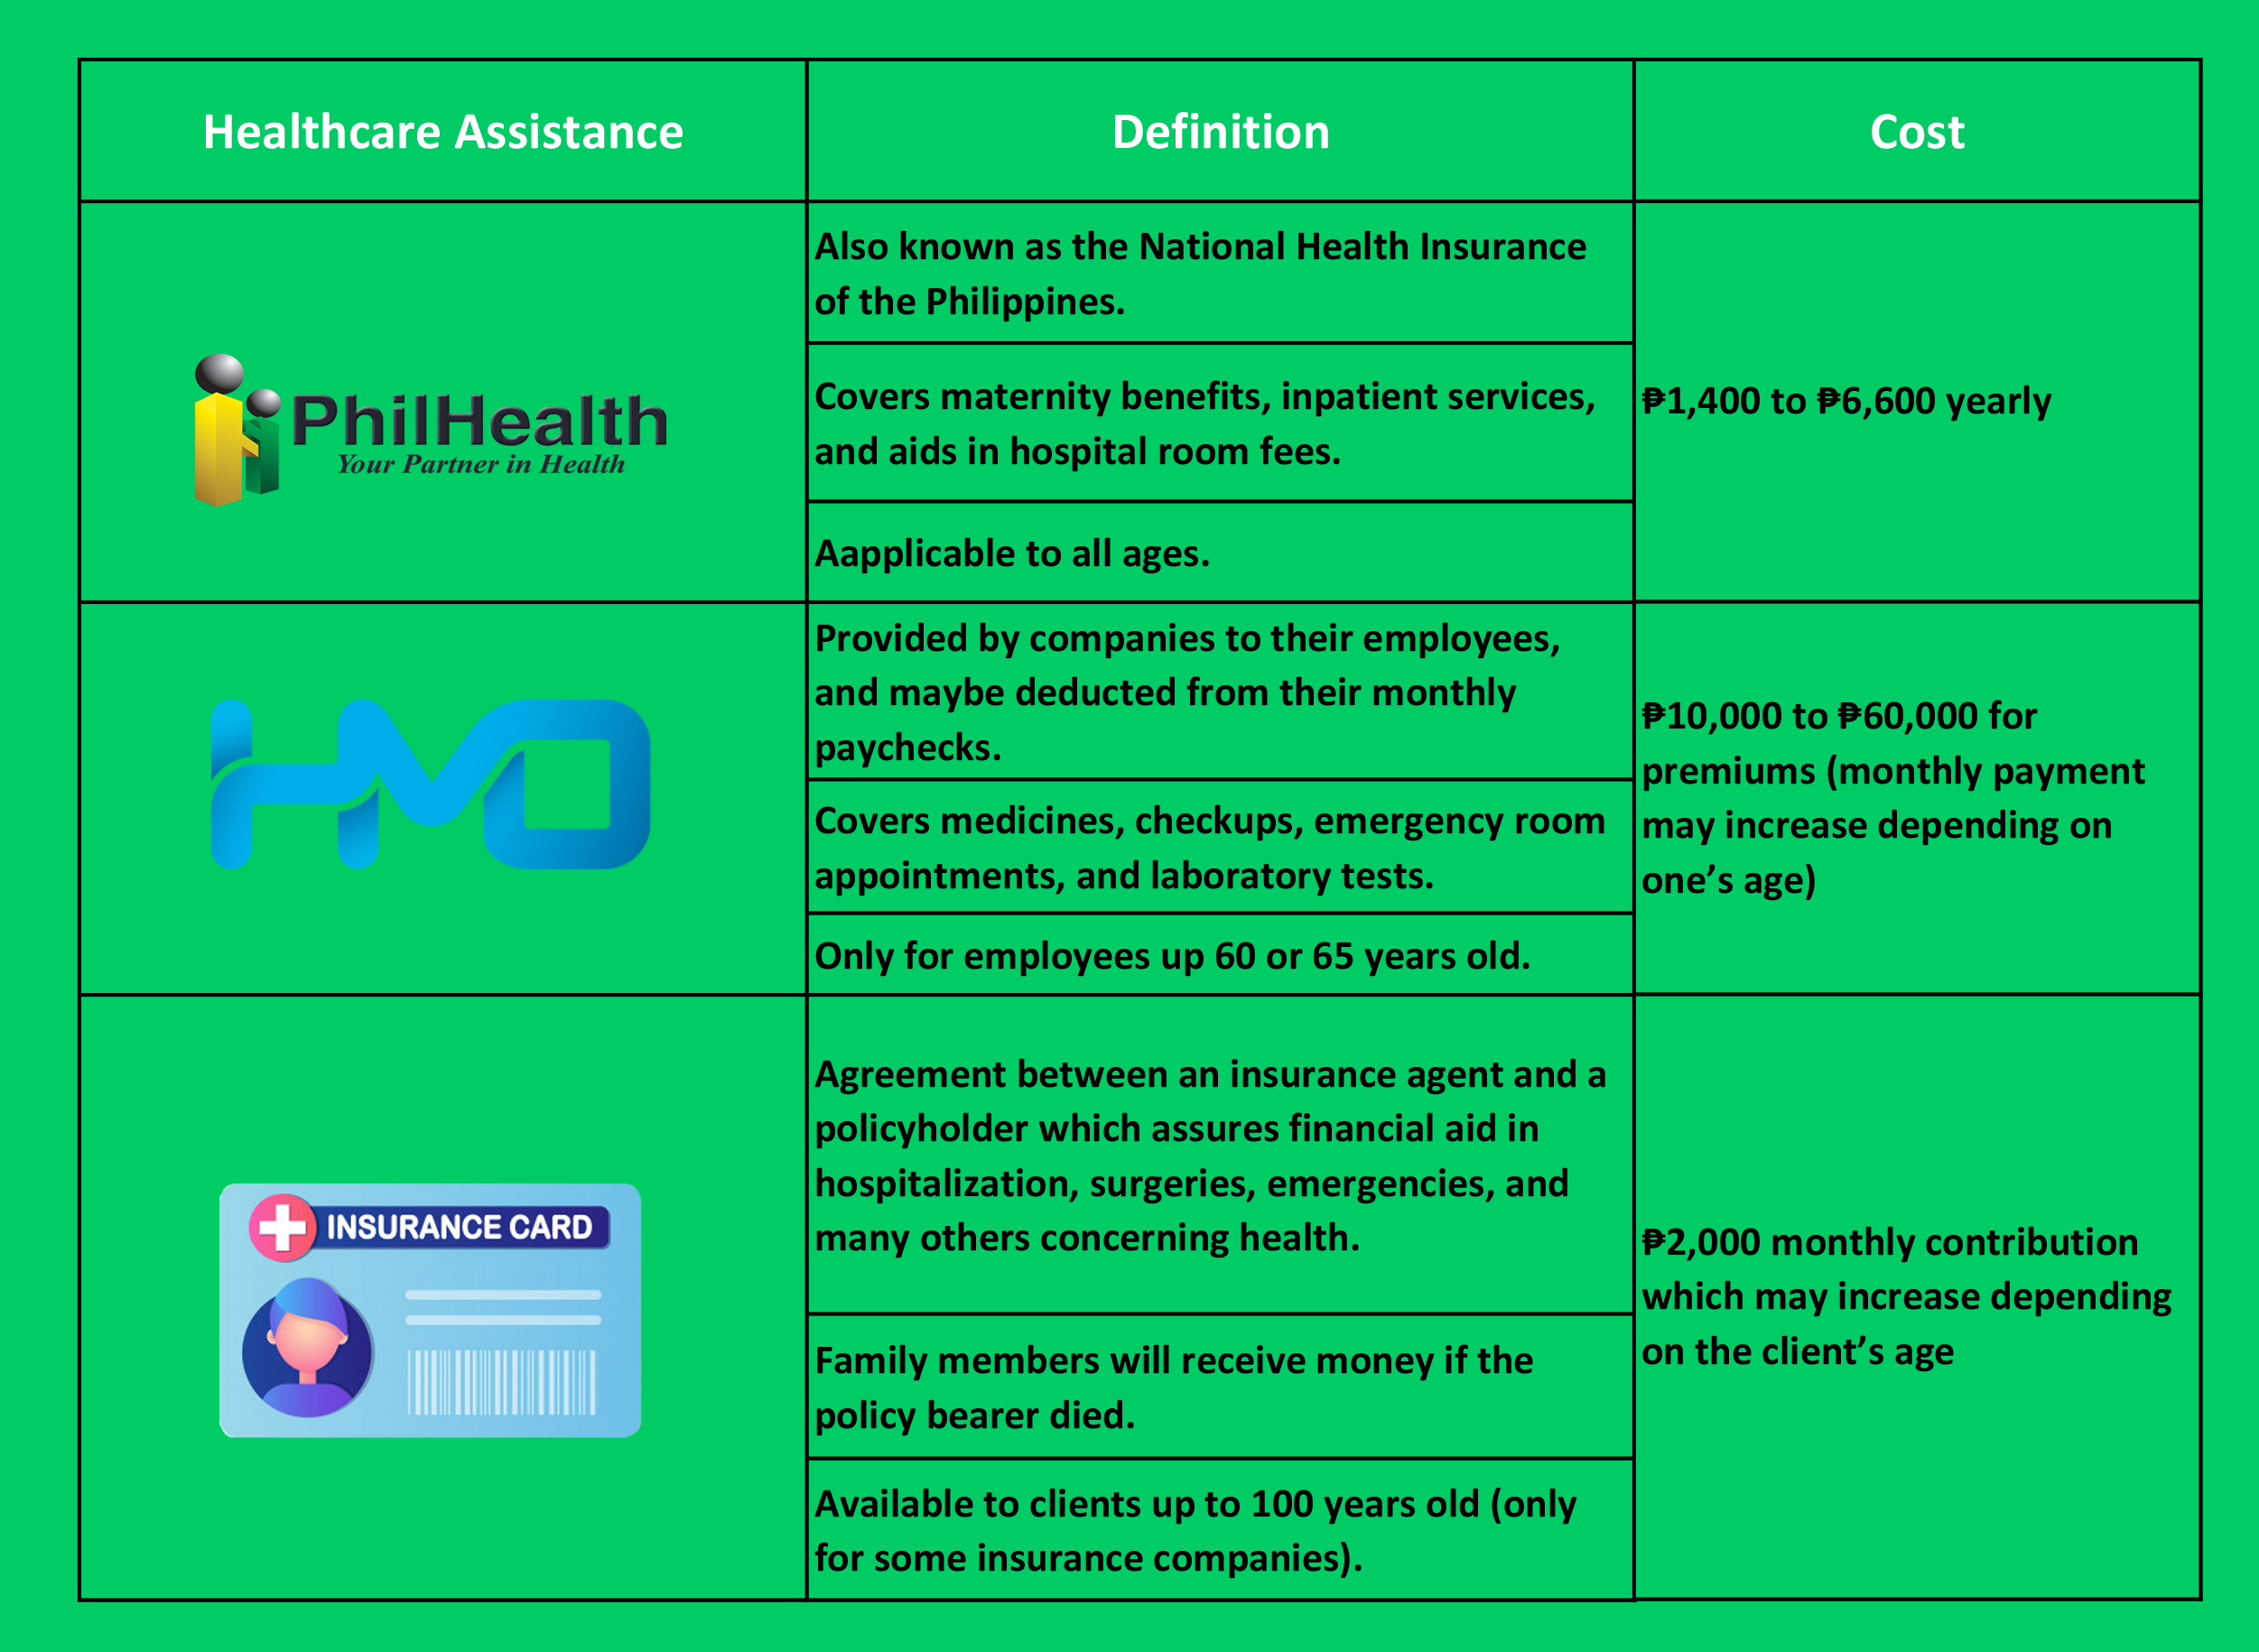 What are the differences between Health Insurance PhilHealth and HMO